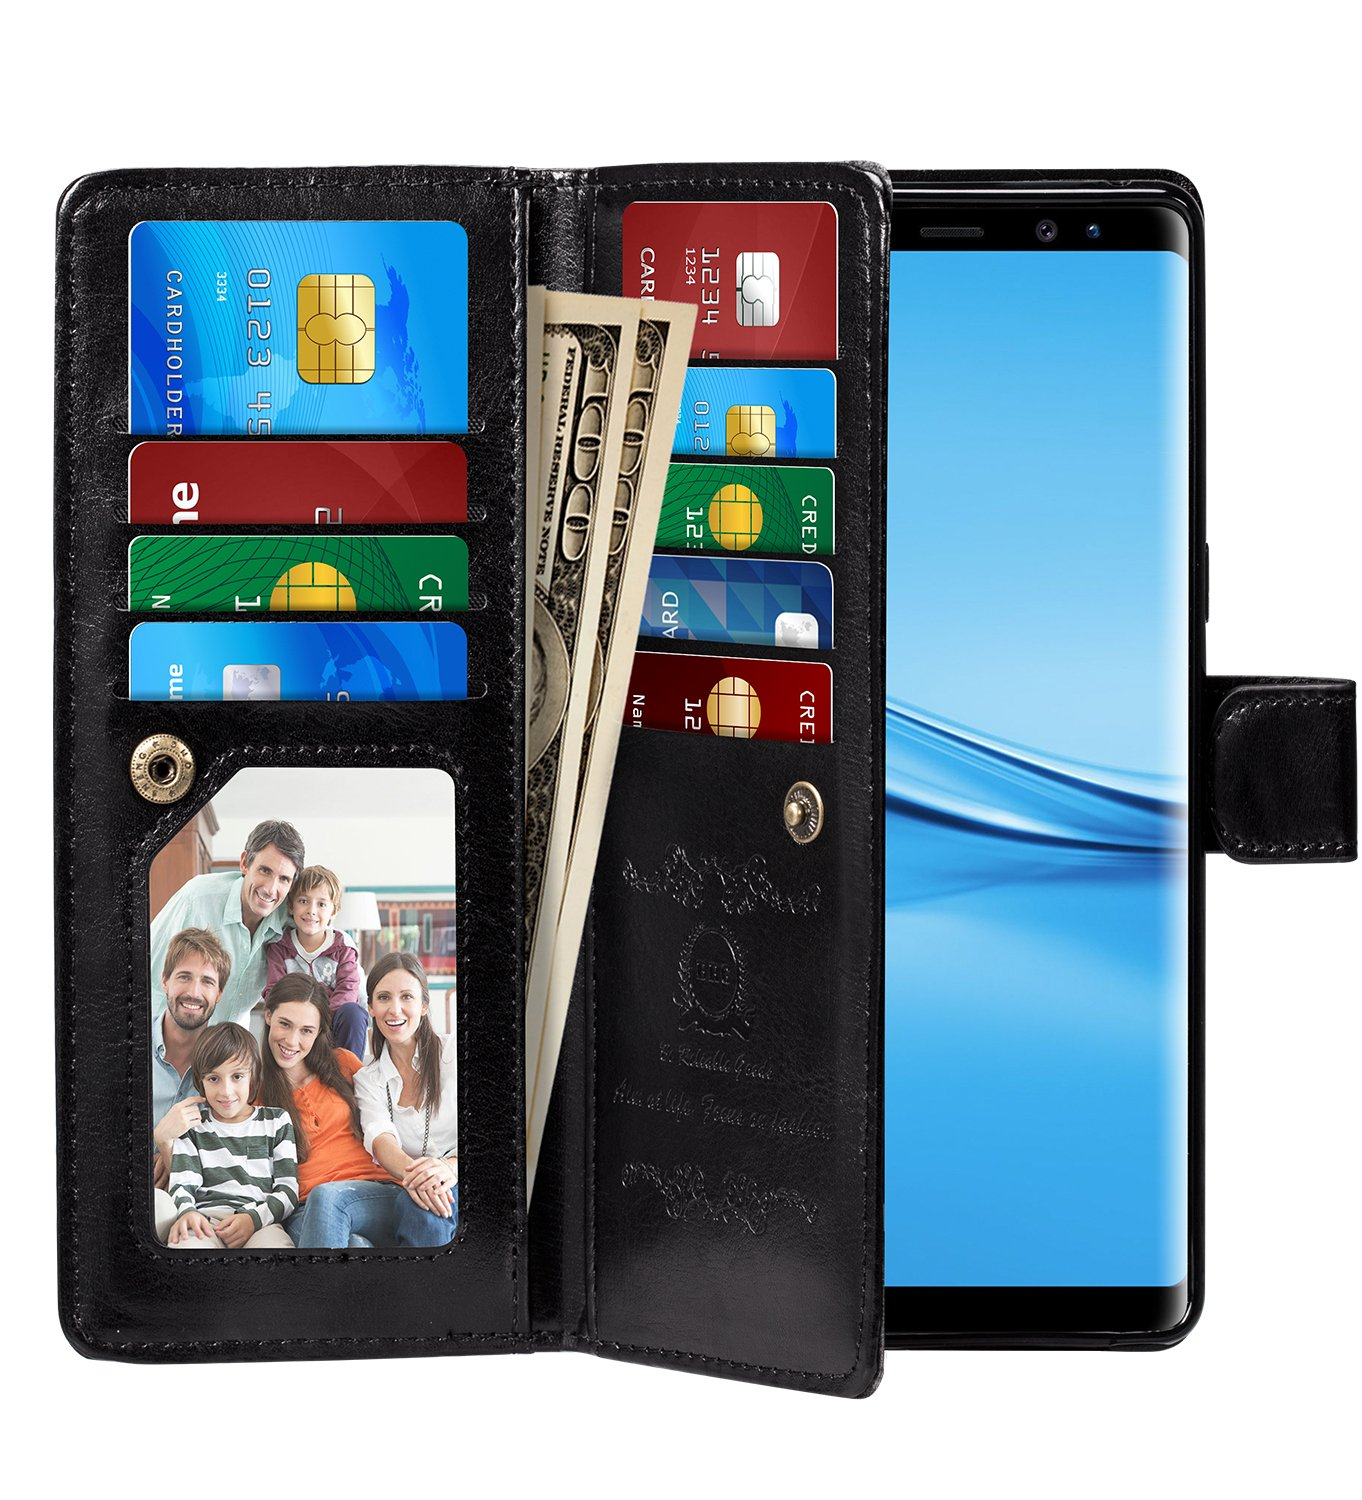 Galaxy Note 8 Case, Pasonomi Note 8 Wallet Case with Detachable SlimCase - [Folio Style] PU leather wallet case with ID&Card Holder Slot Wrist Strap for Samsung Galaxy Note 8 (Black)